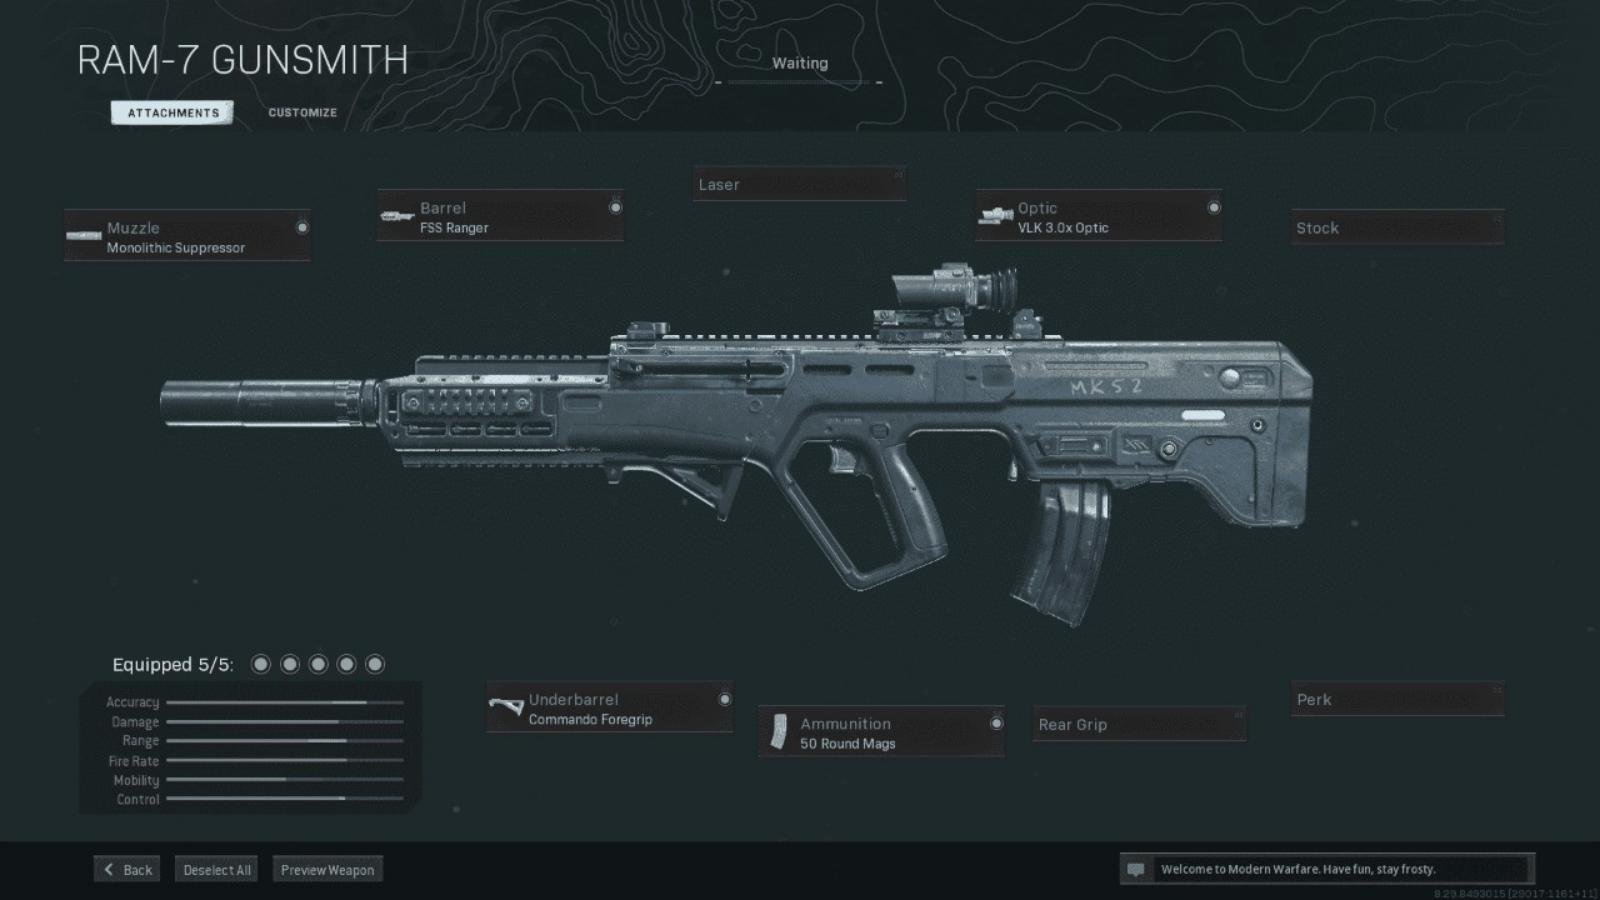 The Best RAM-7 Warzone Loadout with Details